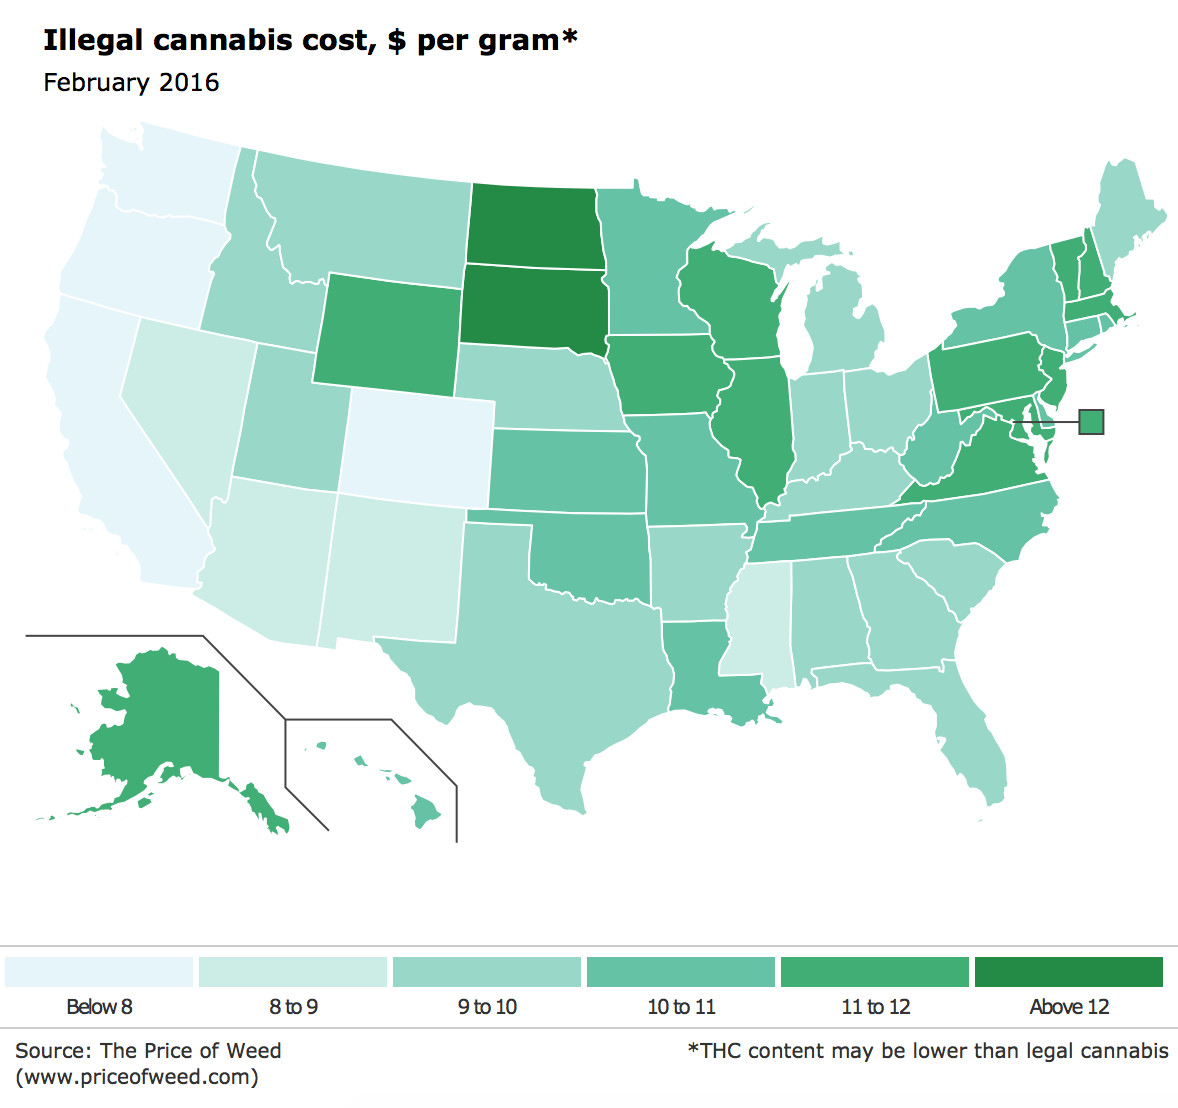 Screenshot of the cost of illegal cannabis